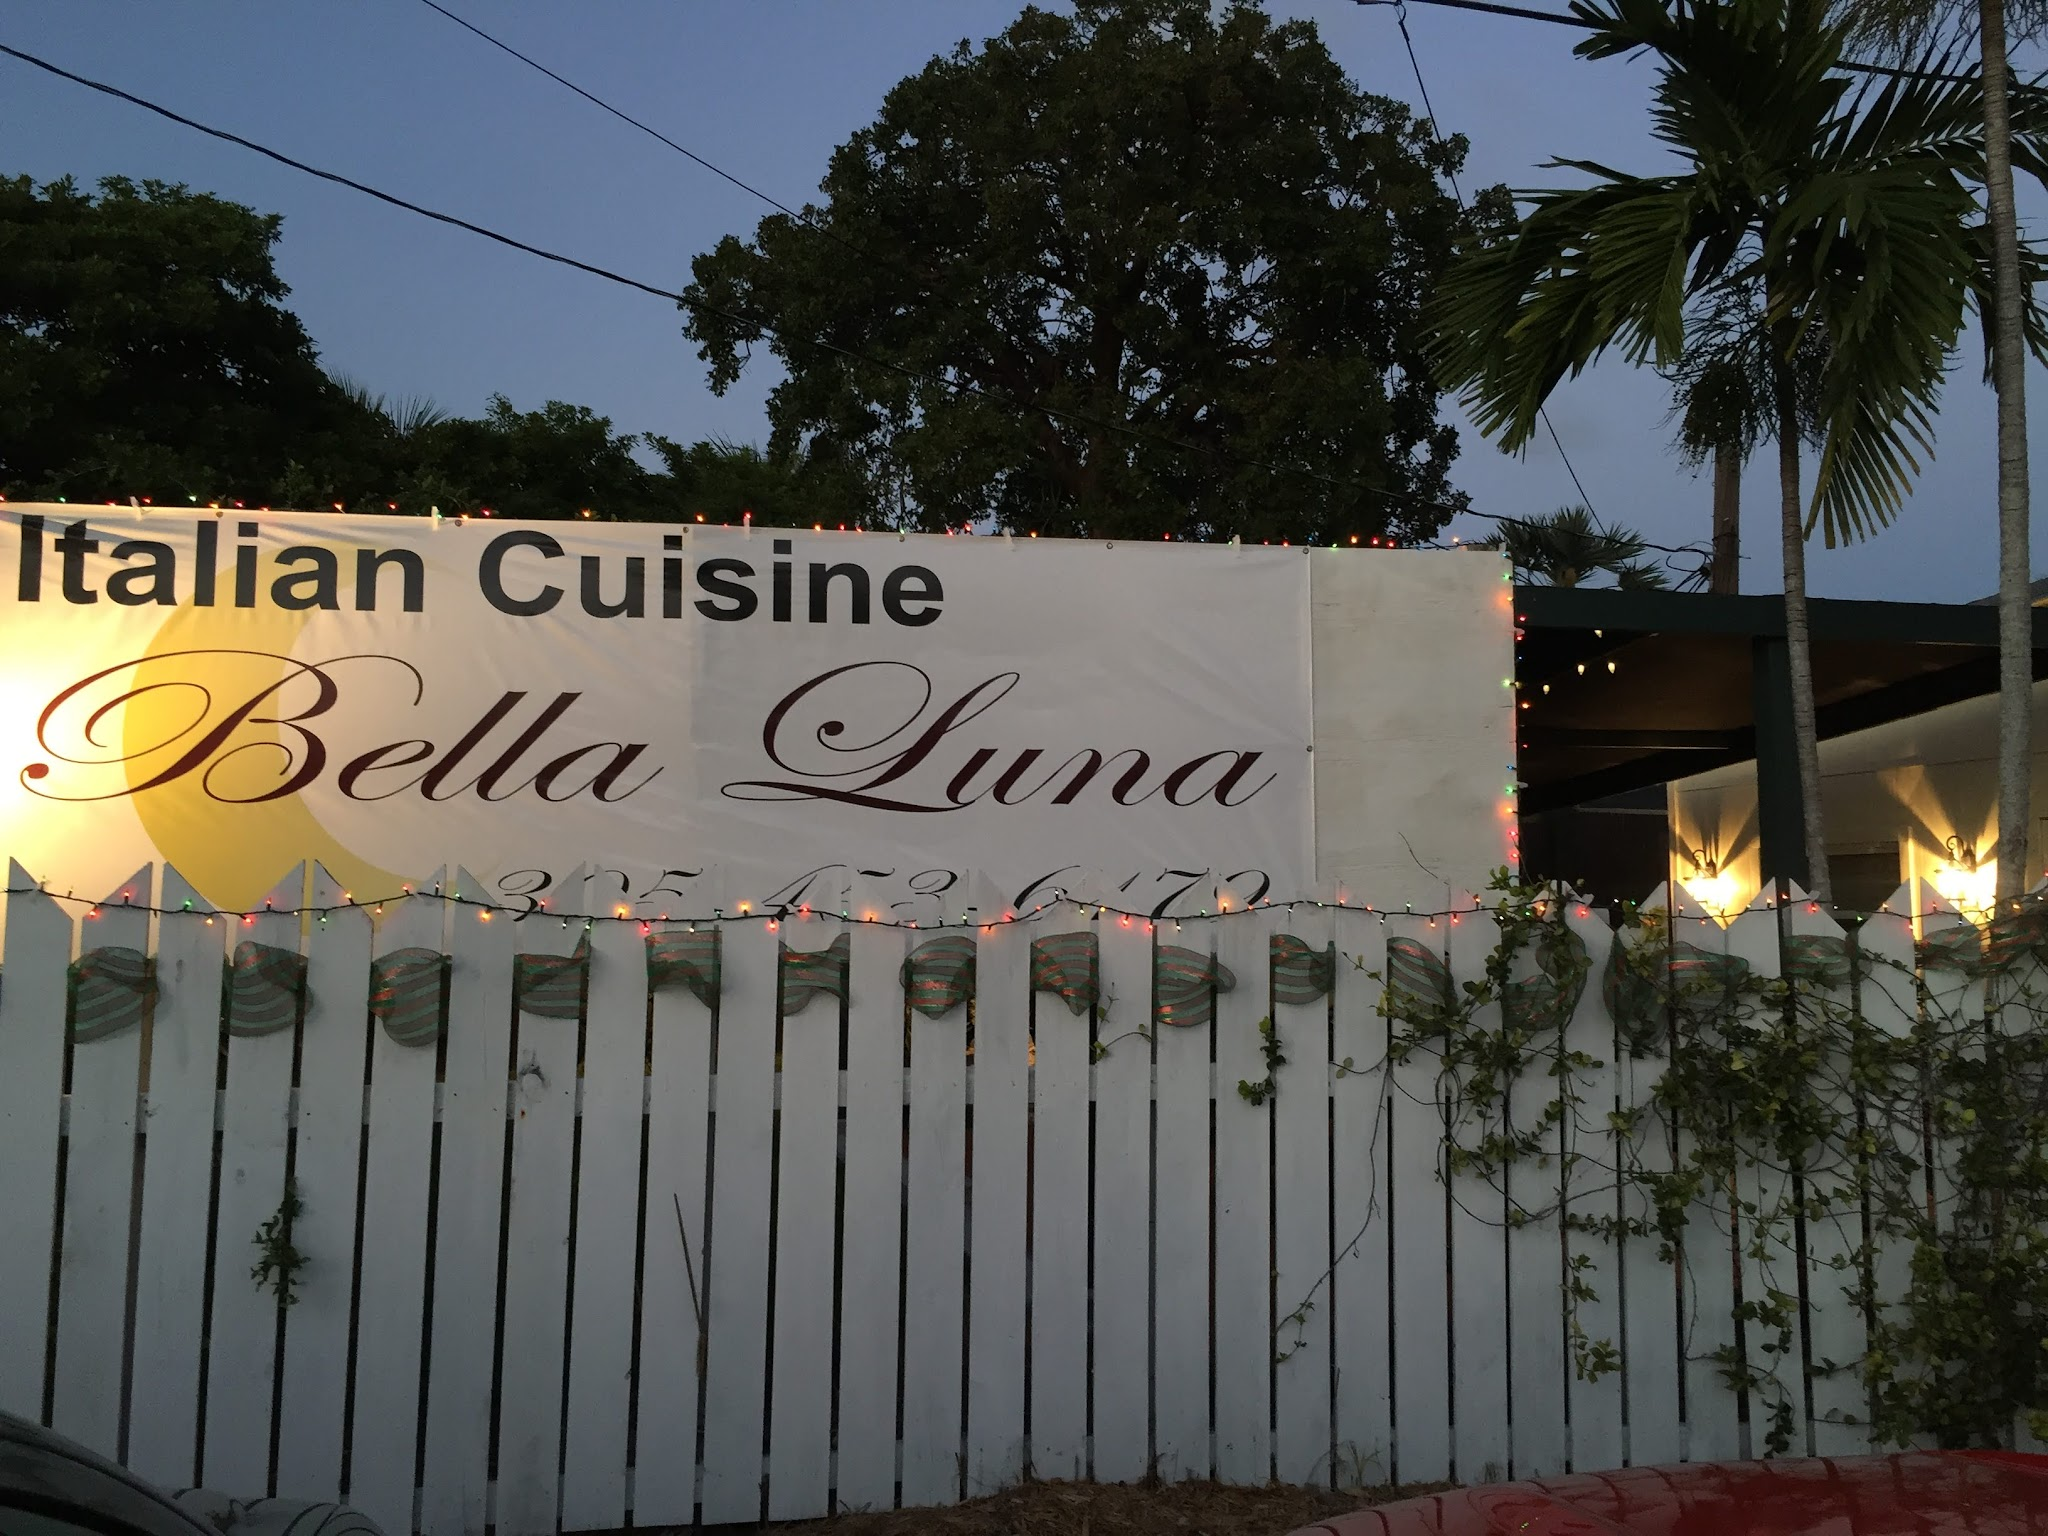 My Neighbor Is The Chef Here Which Made Me Wonder A Bit How Objective I Could Be At New Italian Restaurant On Cudjoe And Like Brian